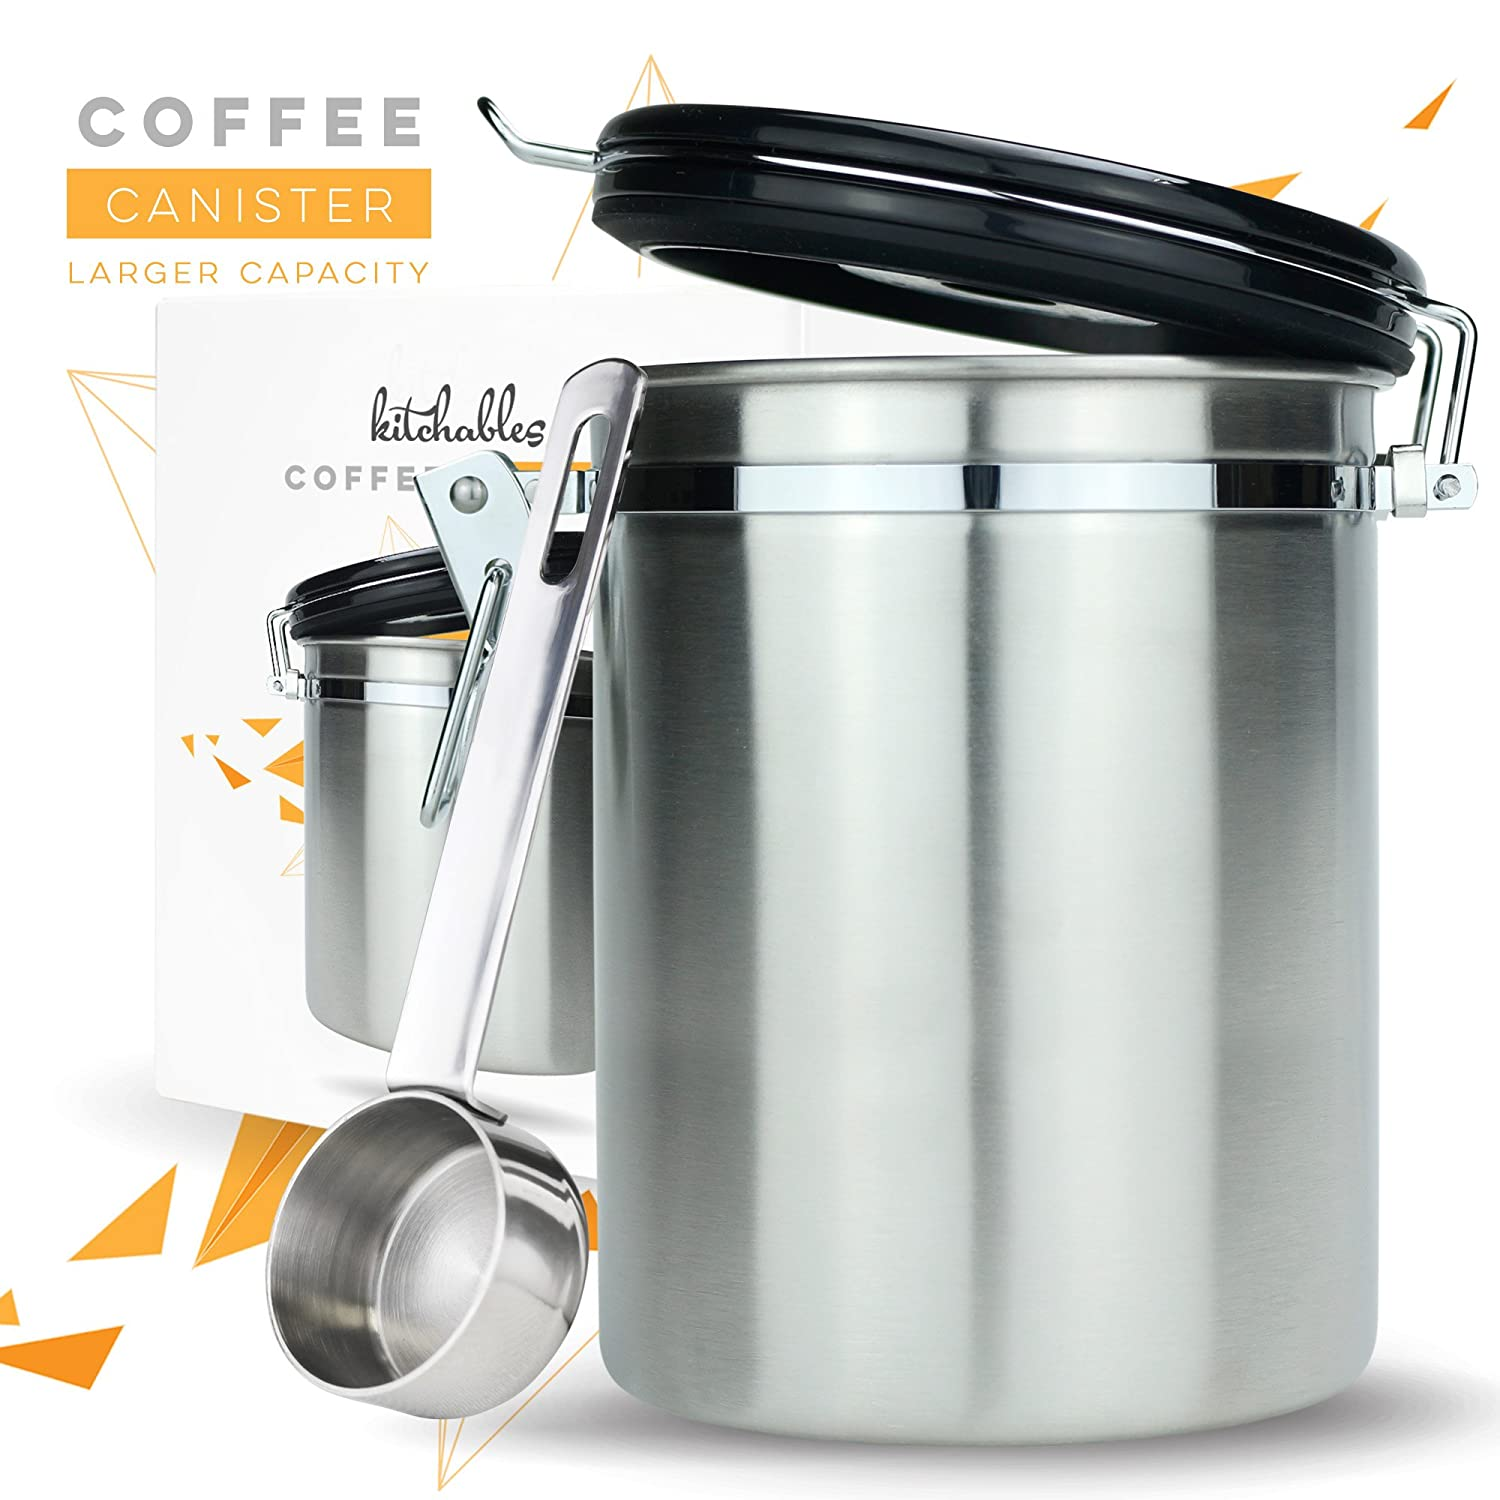 Best Pick#3: Kitchables Large Coffee Canister